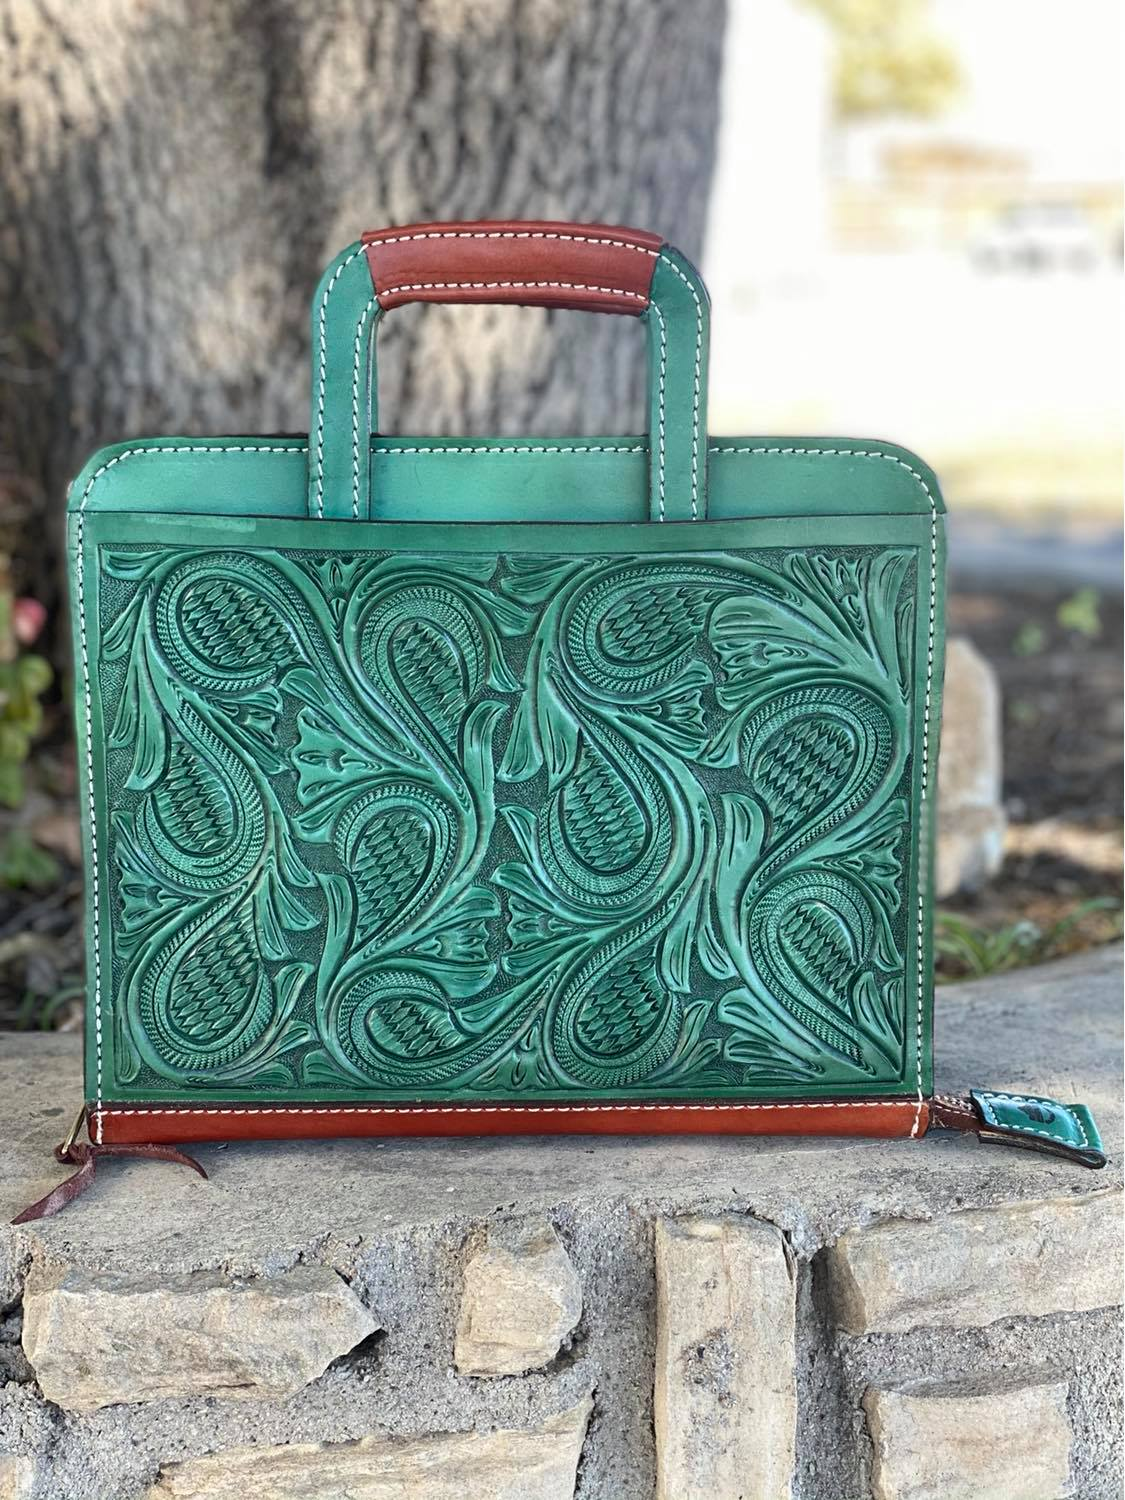 Cowboy Briefcase turquoise floral Tooled